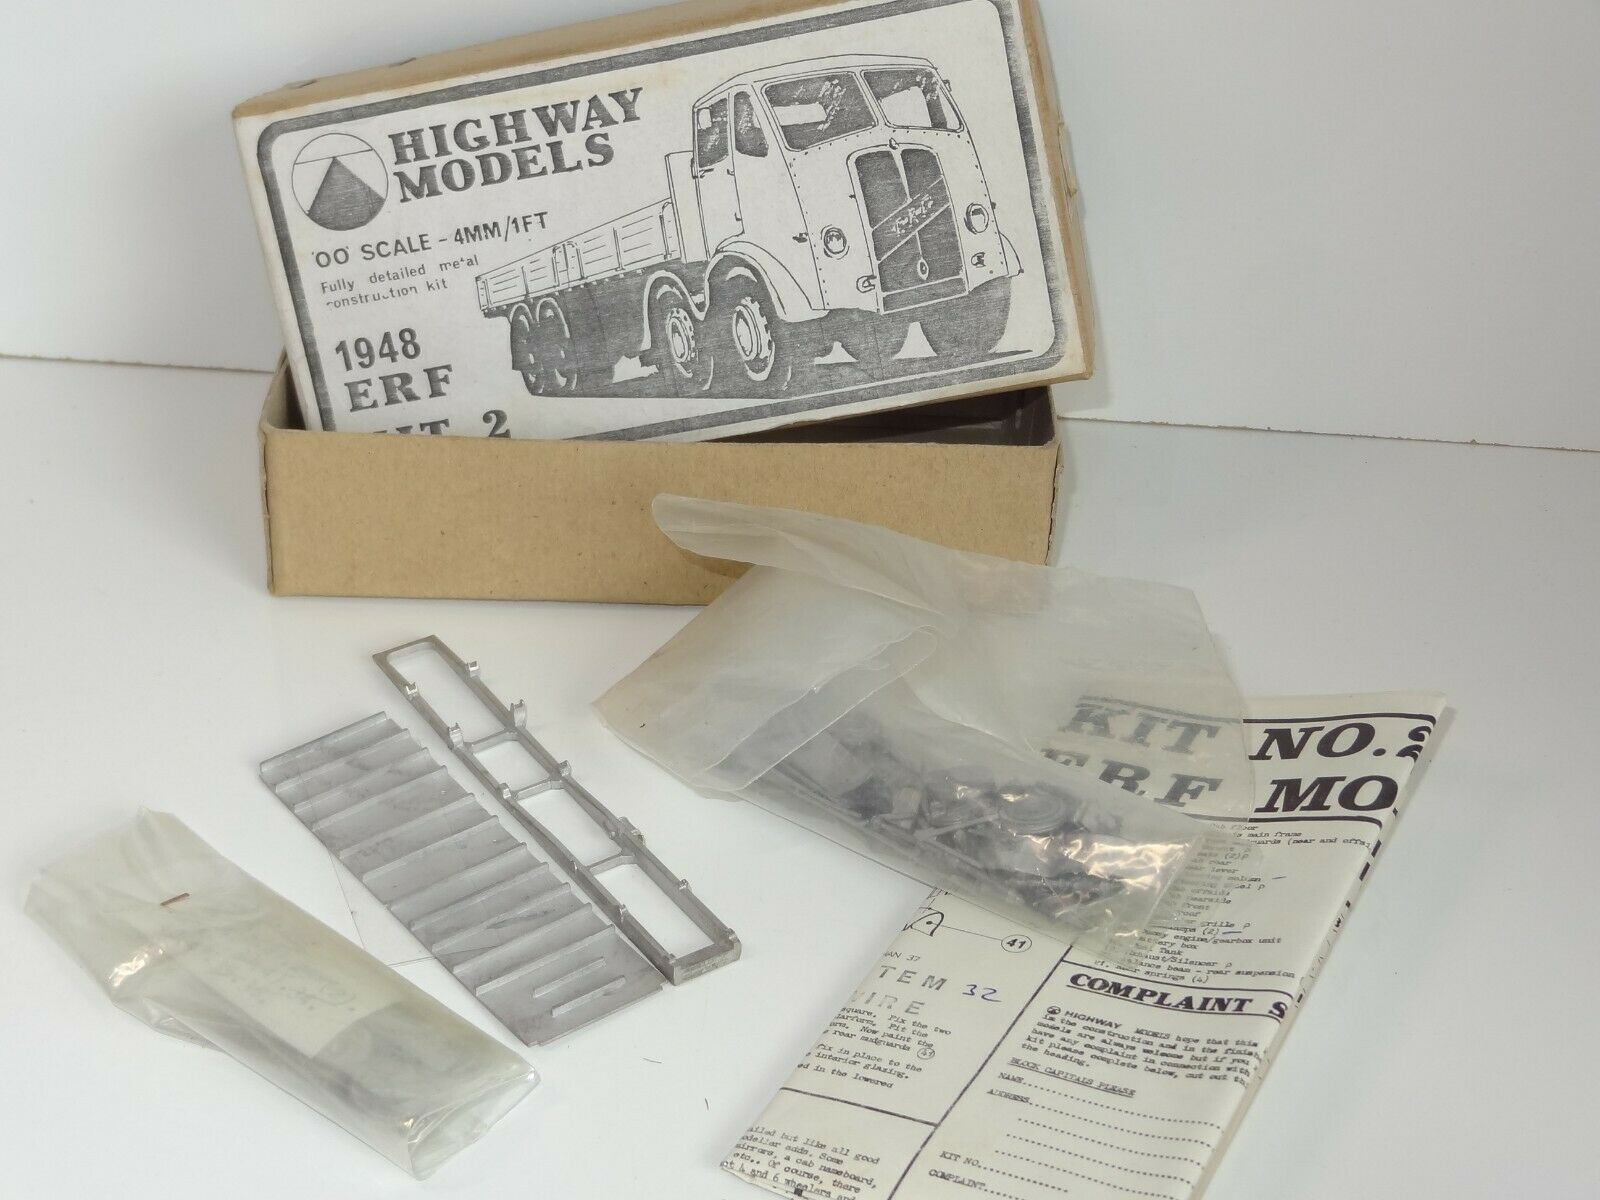 Highway blanc Metal Kit 1948 ERF 2 Kit (209)